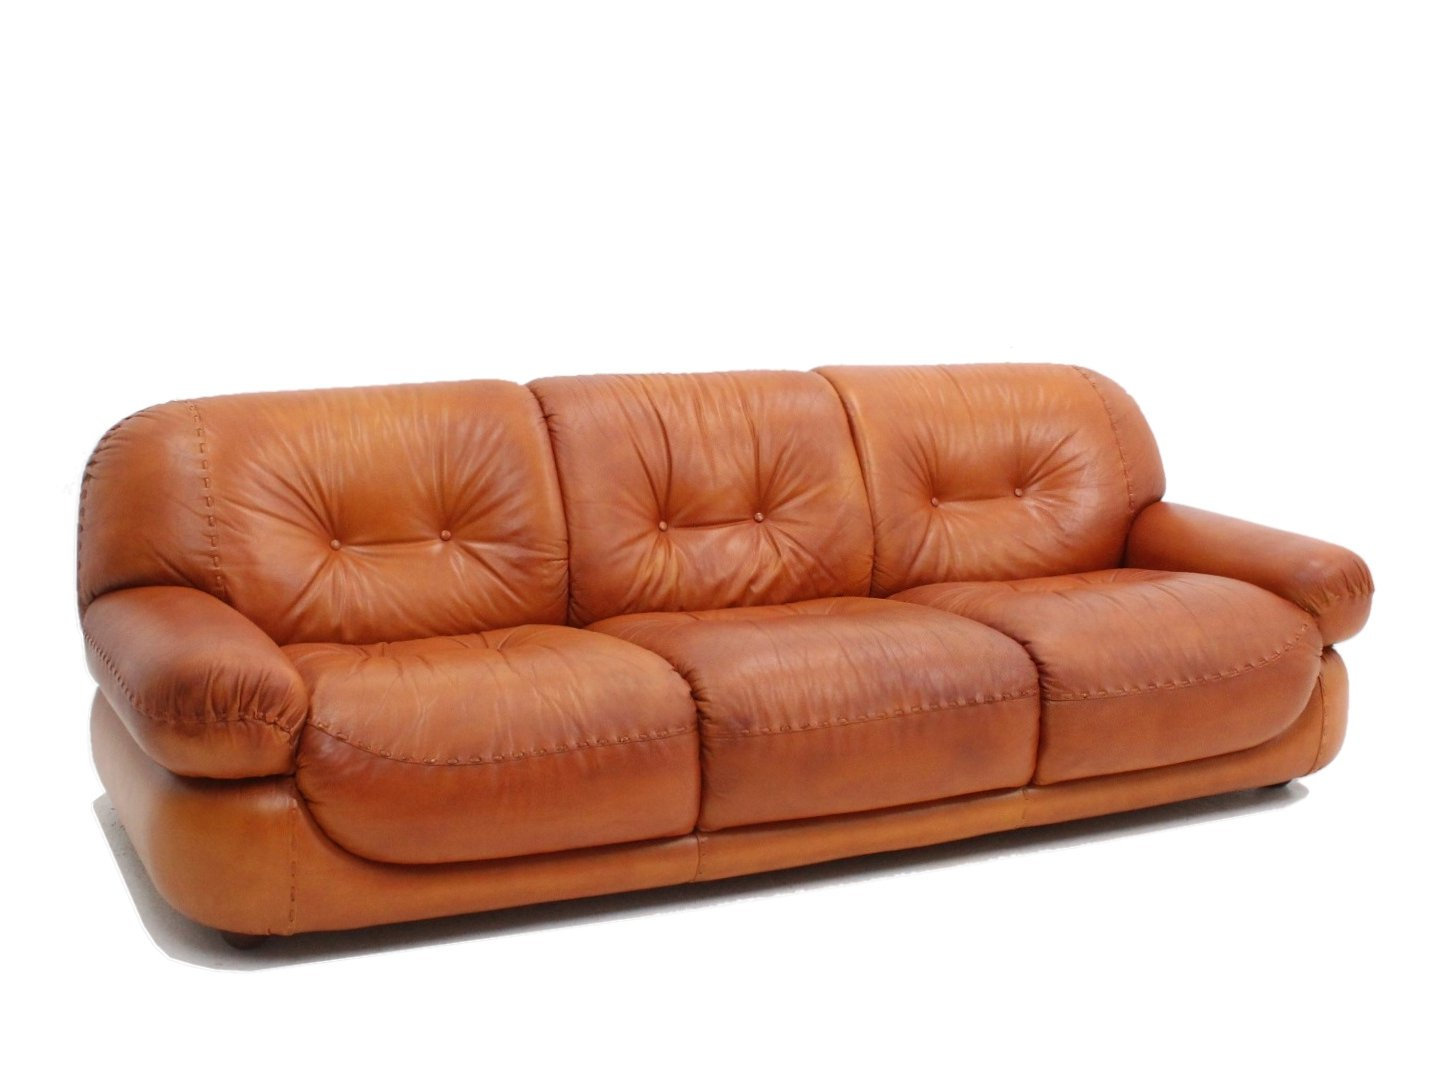 Italian Vintage Leather Sofa By Mobil Girgi 1970s 152522